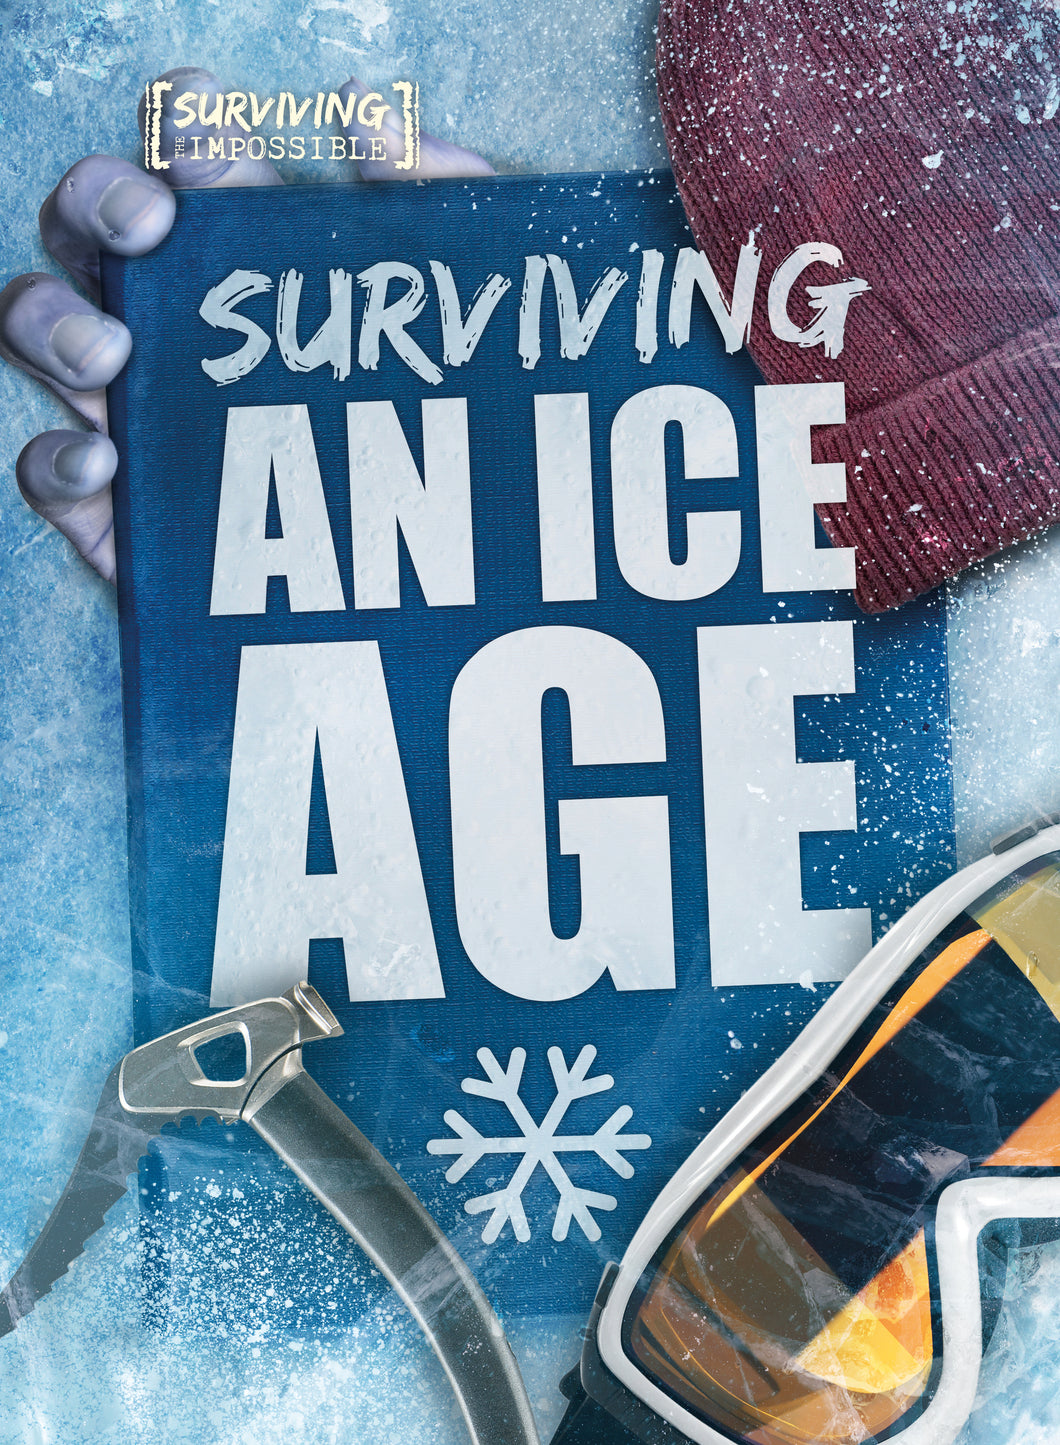 Surviving an Ice Age Childrens book 9781912502240